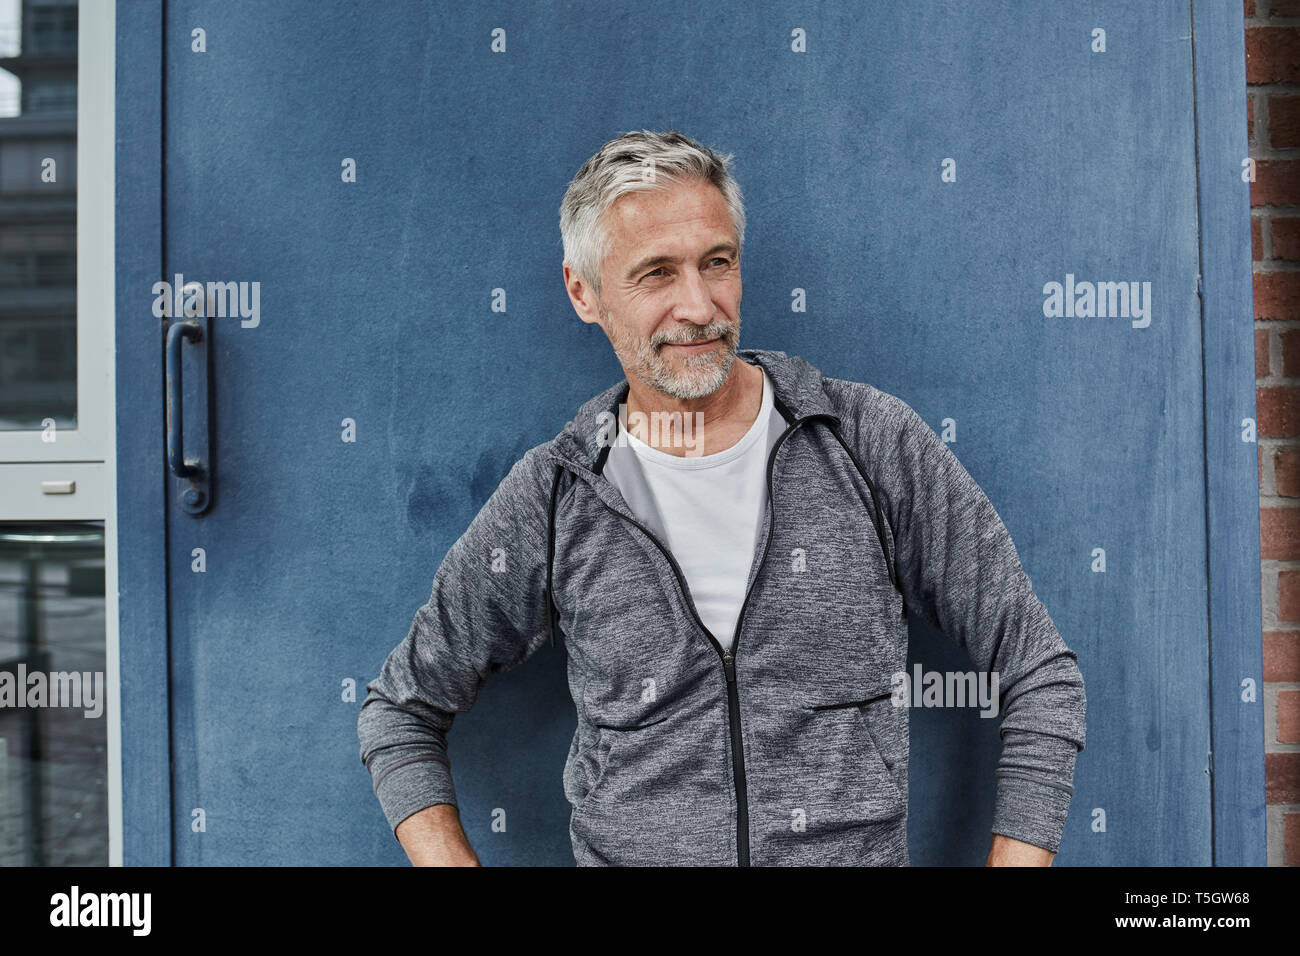 Portrait of mature man wearing tracksuit top in front of gym - Stock Image